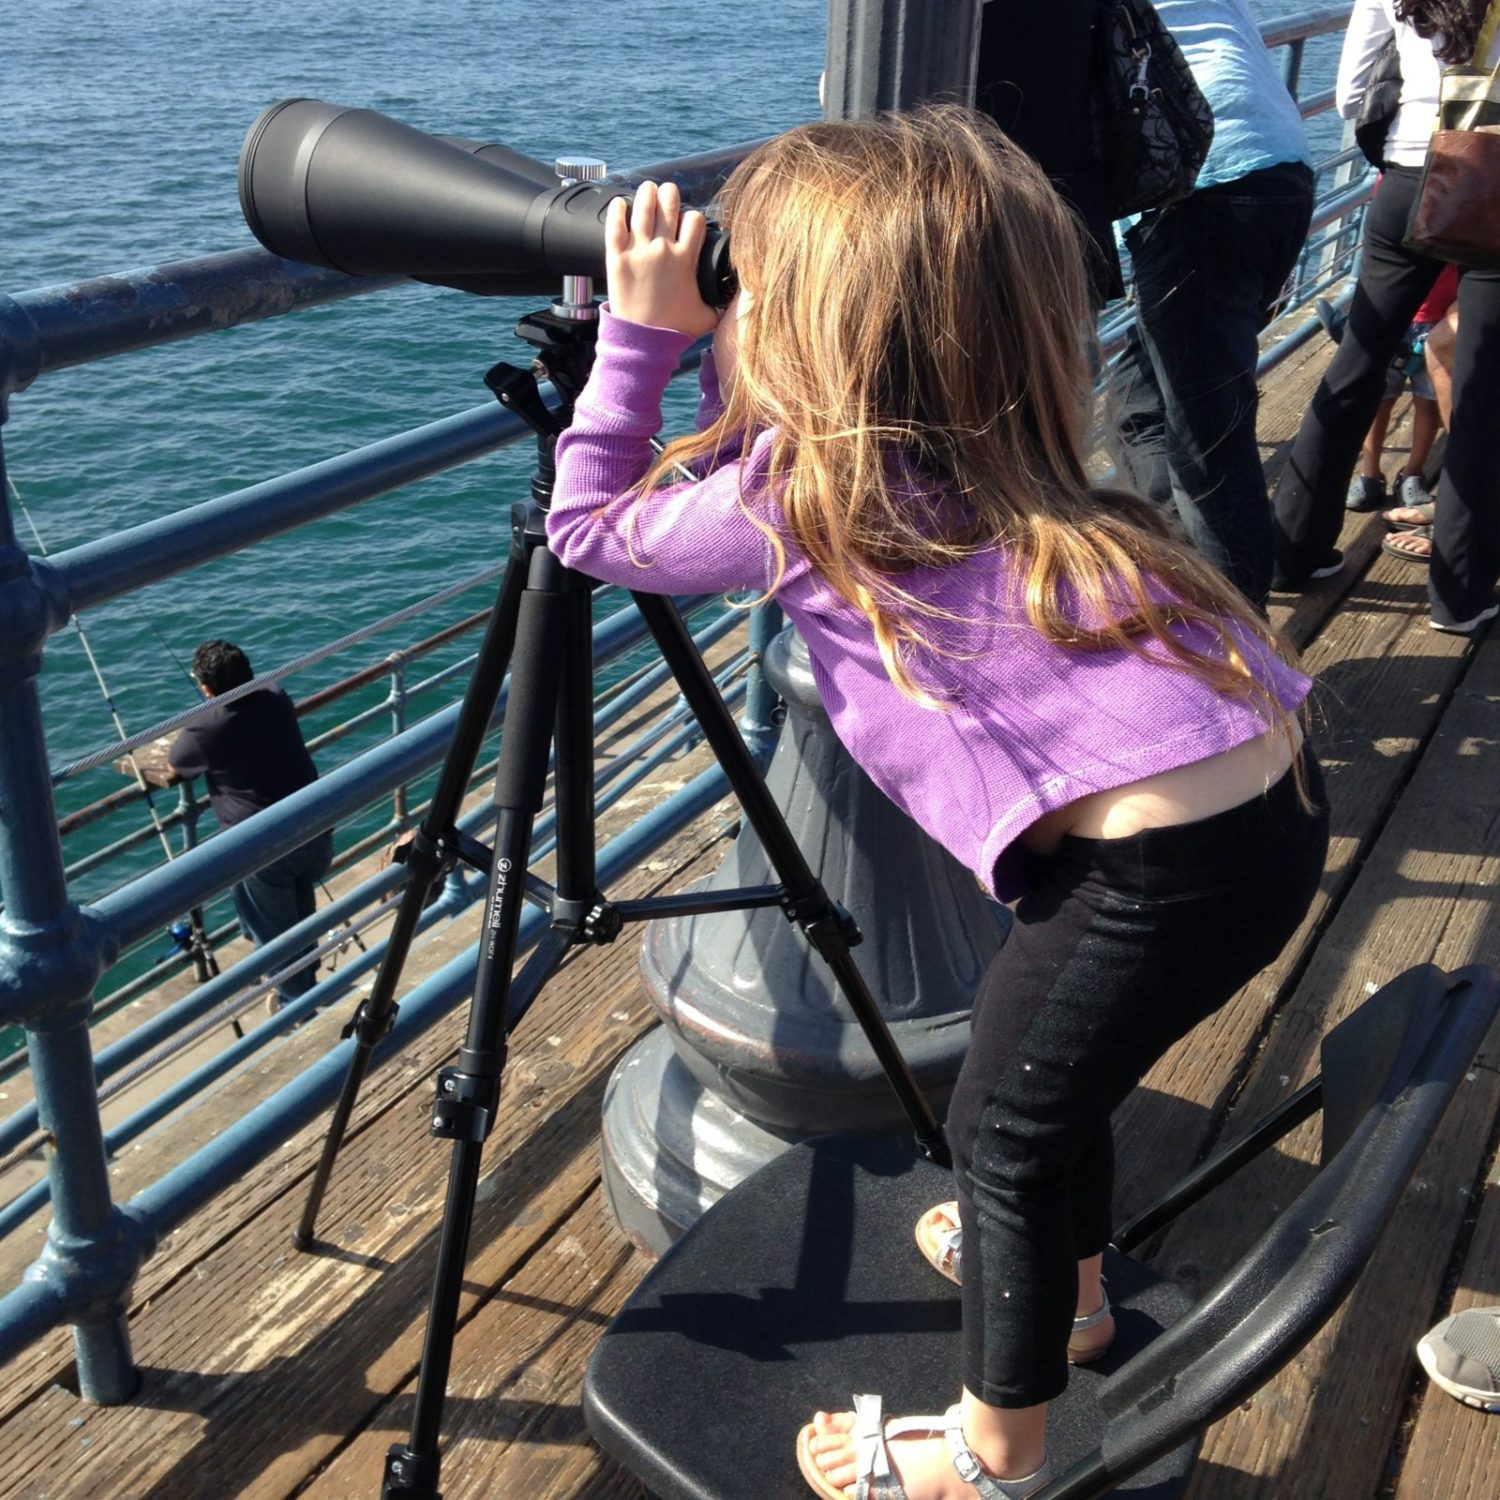 Whale spying 2-15-14 by TC